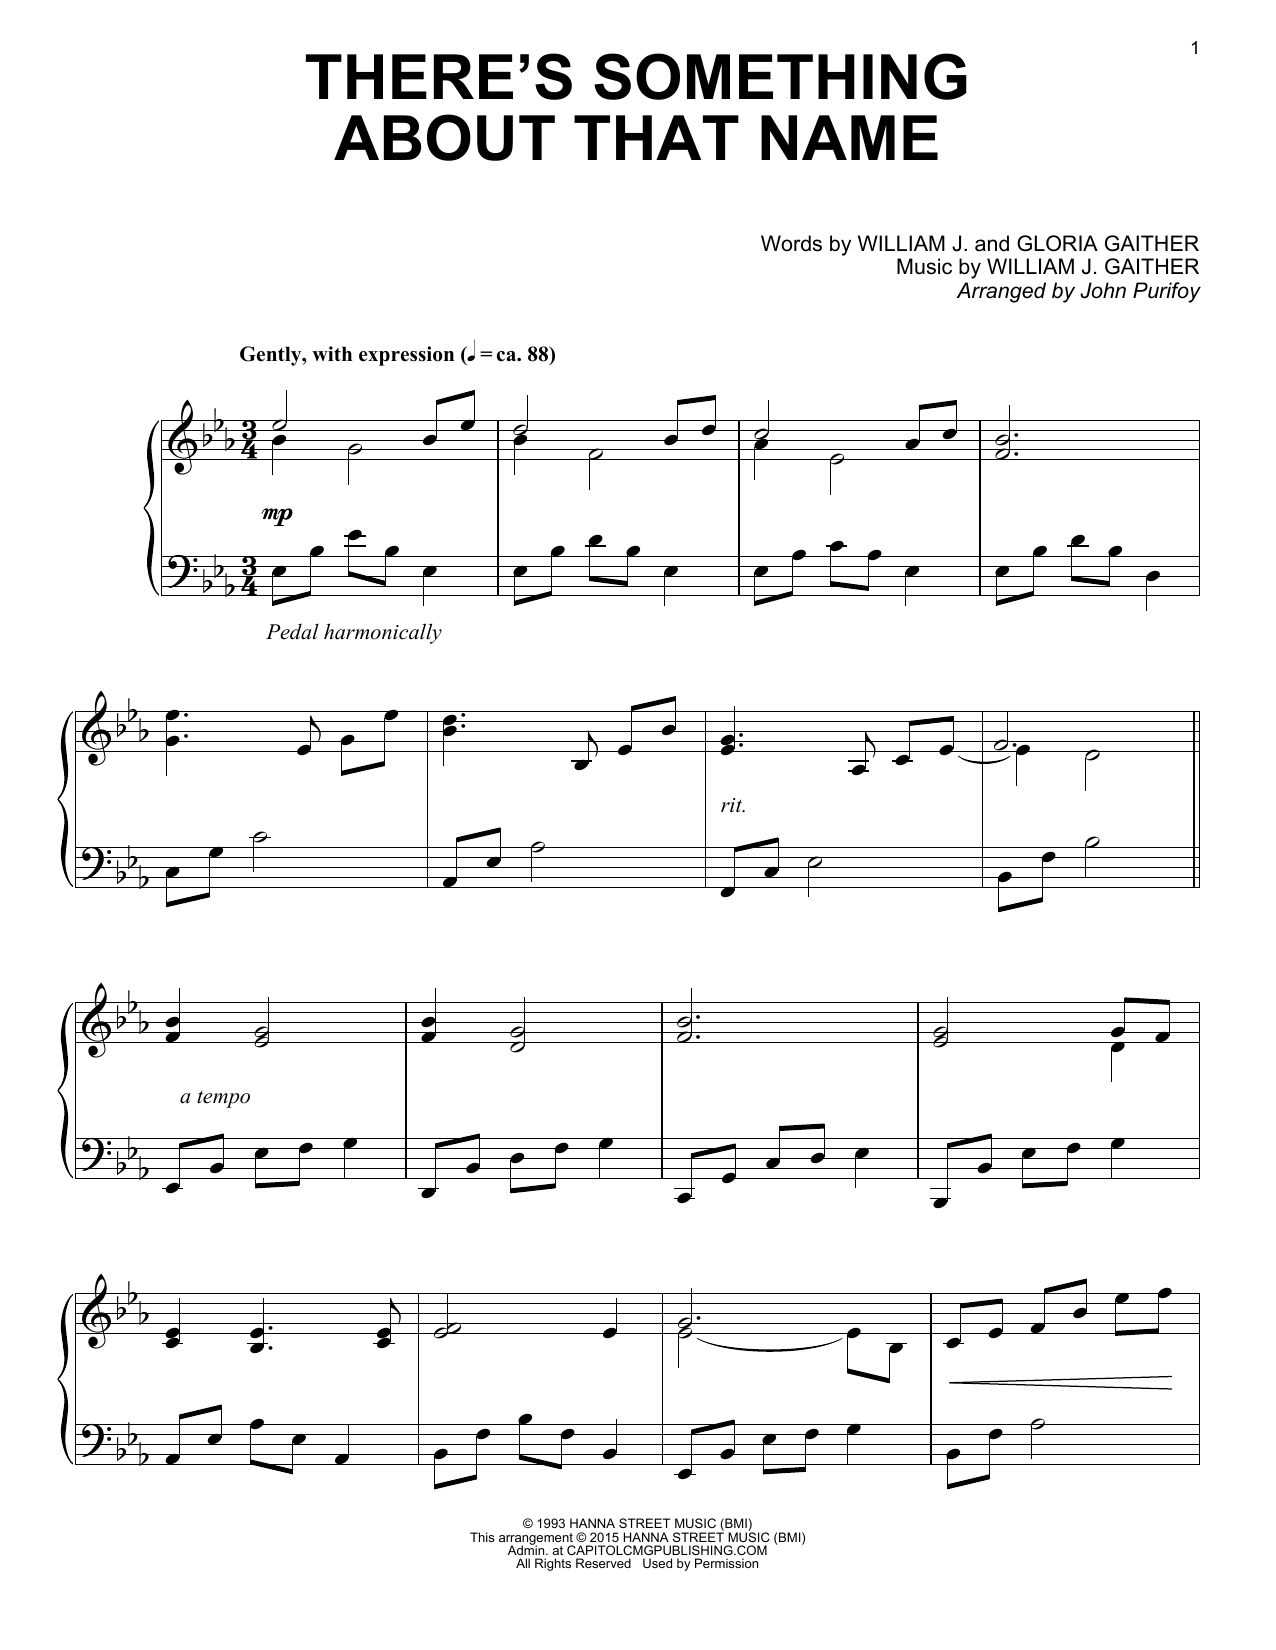 Gaither Vocal Band There's Something About That Name sheet music notes and chords. Download Printable PDF.